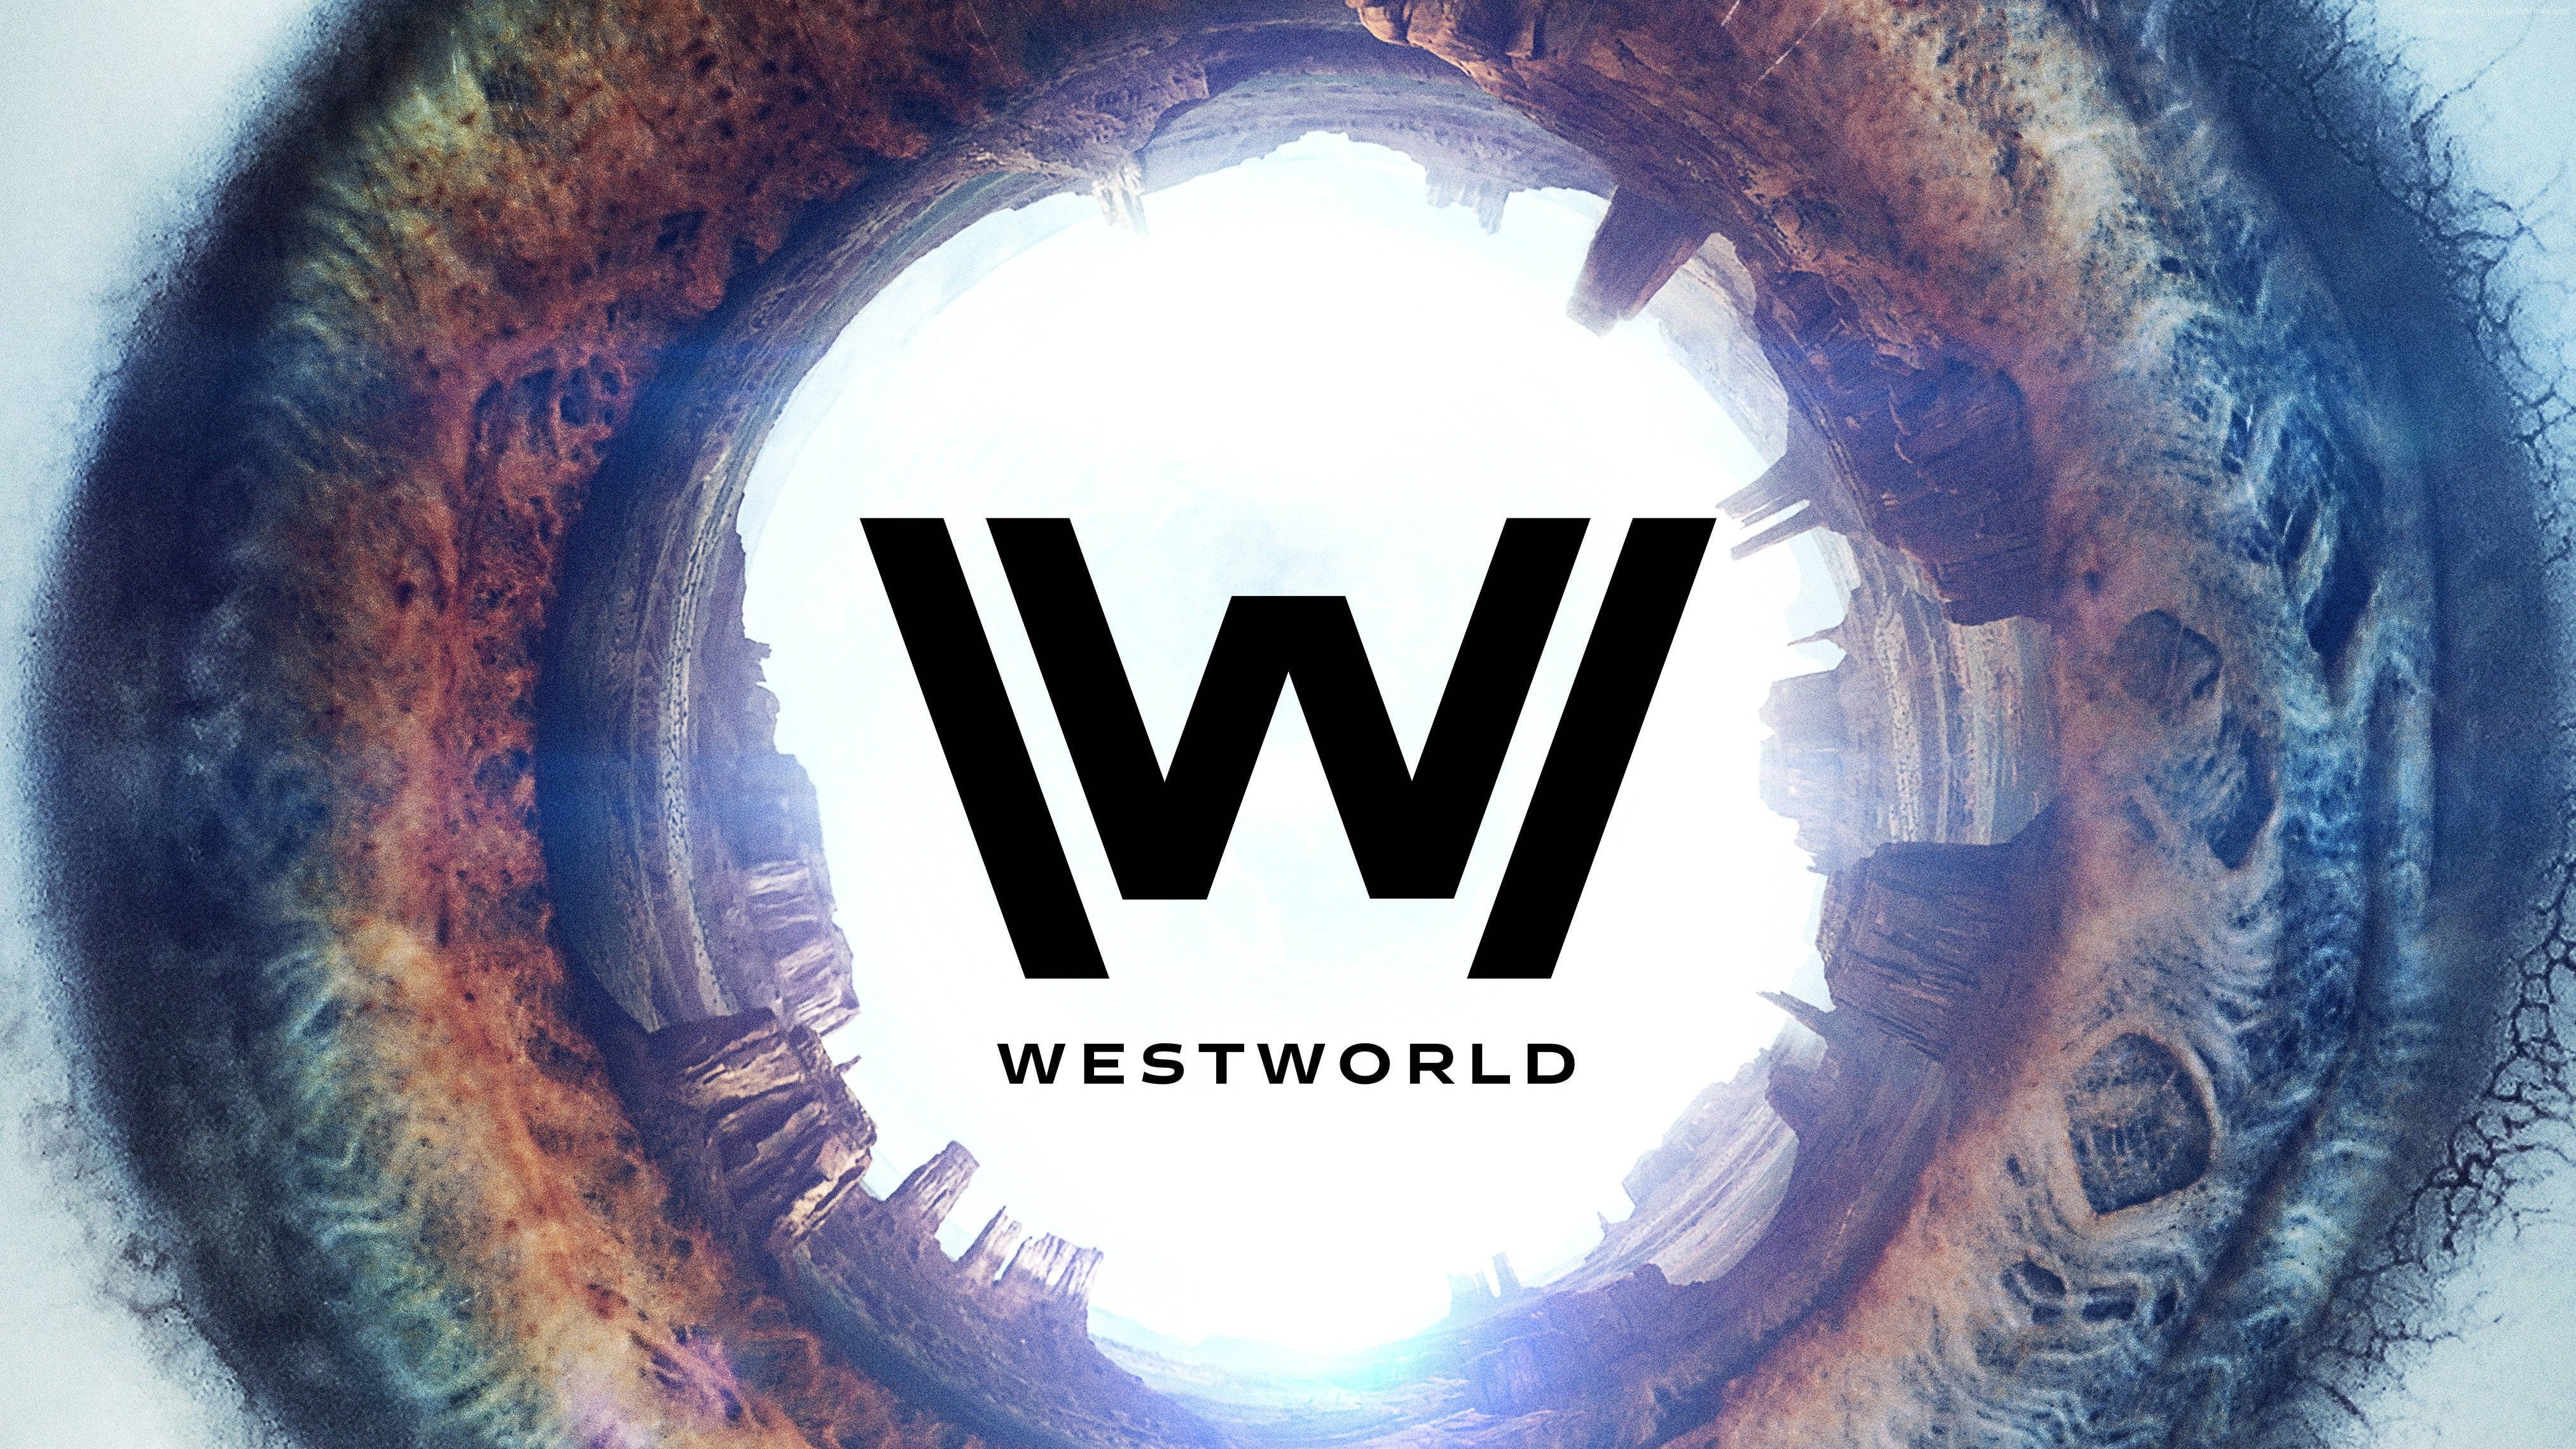 Logo 4k Westworld Season 2 Tv Series 4k Wallpaper Hdwallpaper Desktop Westworld Season 2 Westworld Season Westworld